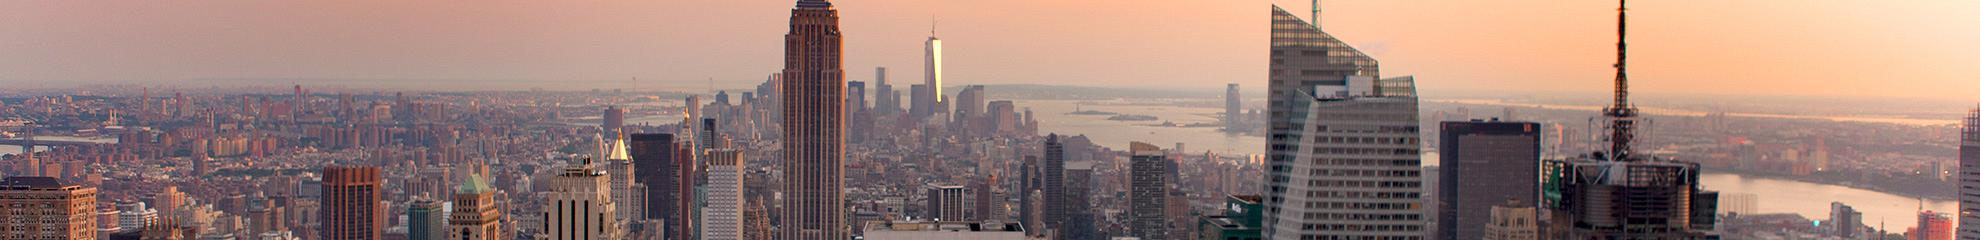 /thumb.php?thumb=%2Fuploadedfiles%2Fmedia%2FBilder%2Fcity%2Ftopbanners%2FEnglisch%2FNew-York_1980x240_75.jpg